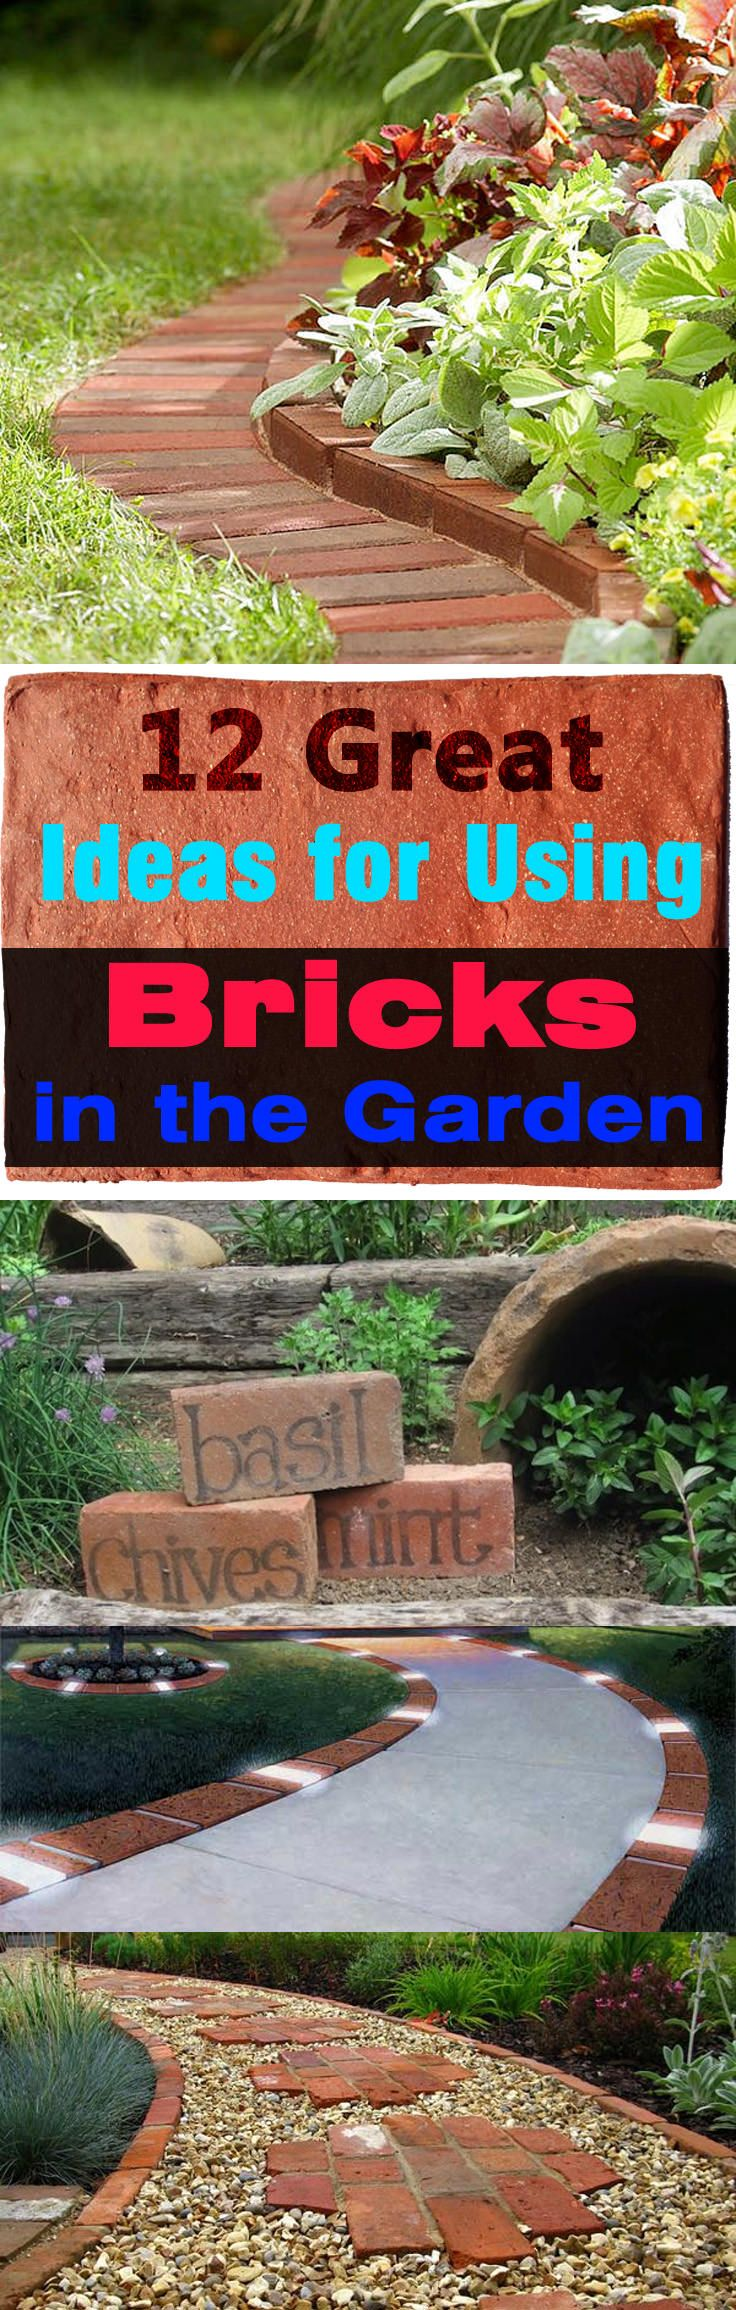 12 smart ideas to use bricks in garden design - Brick Garden 2015